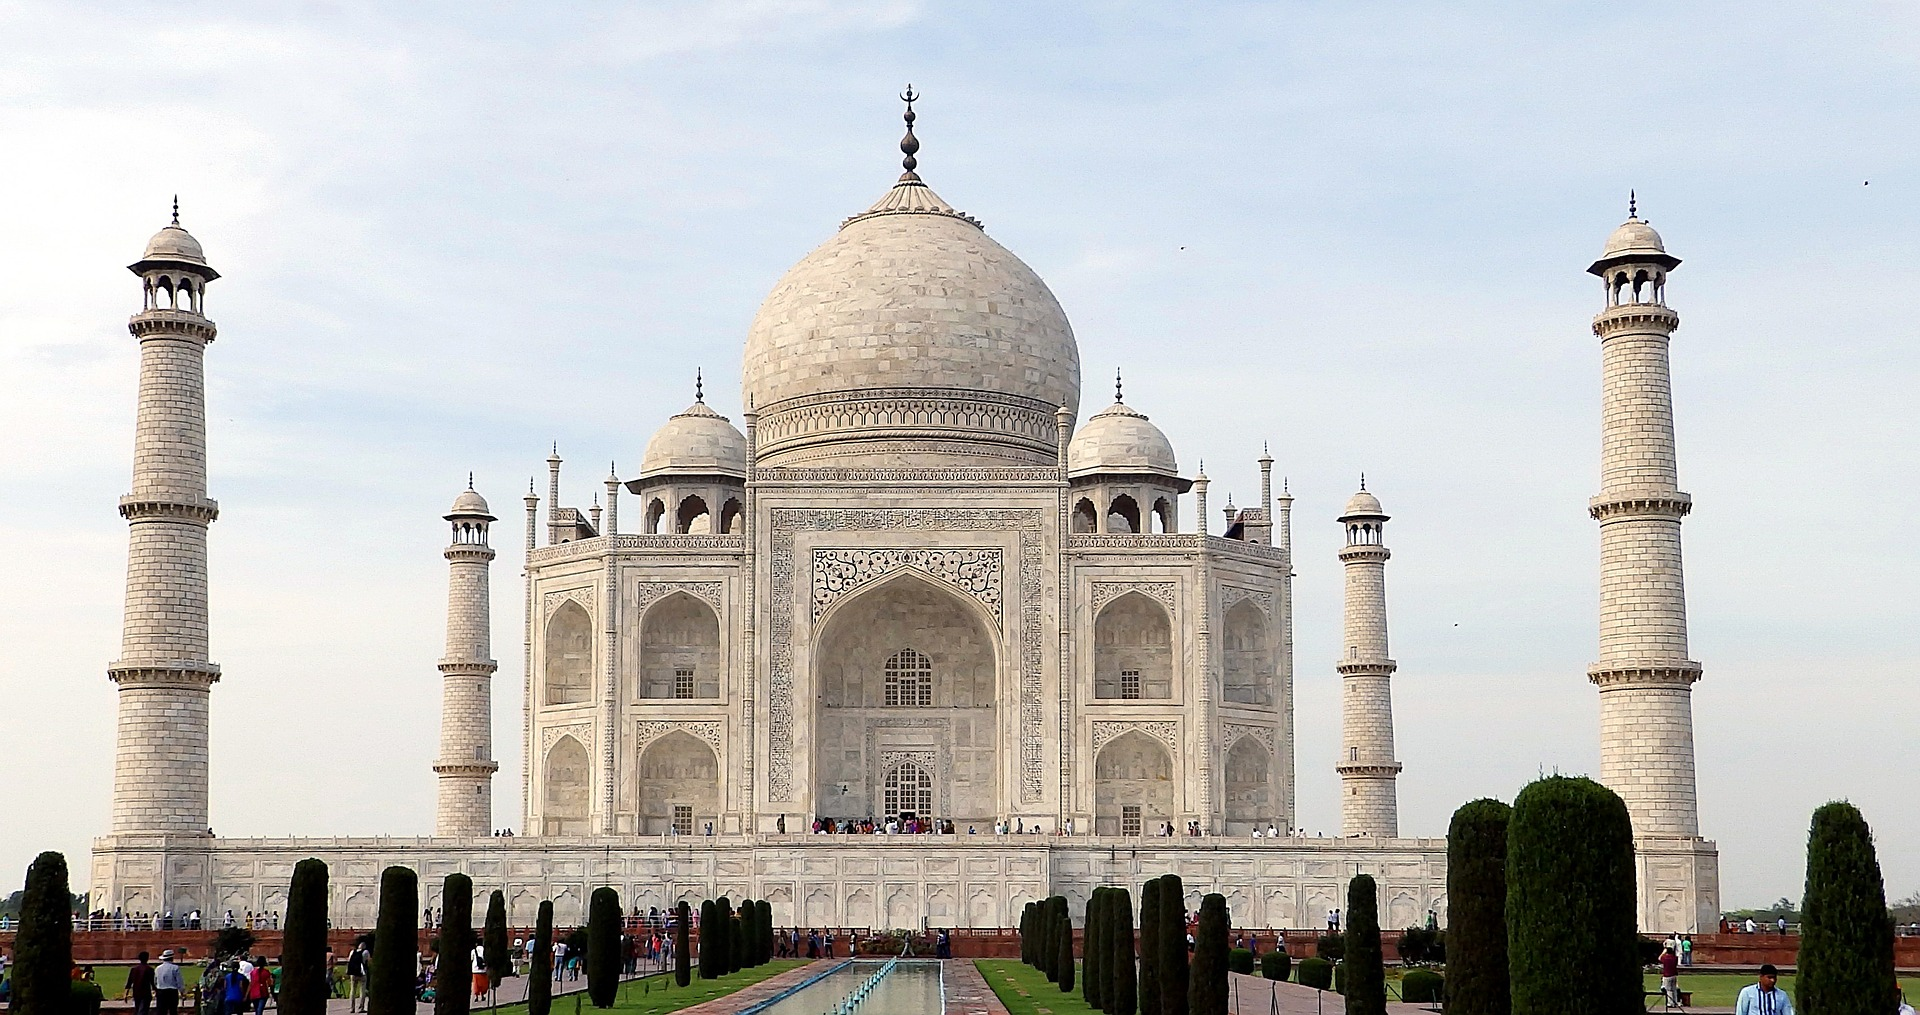 Tips that you need to know before visiting Taj Mahal